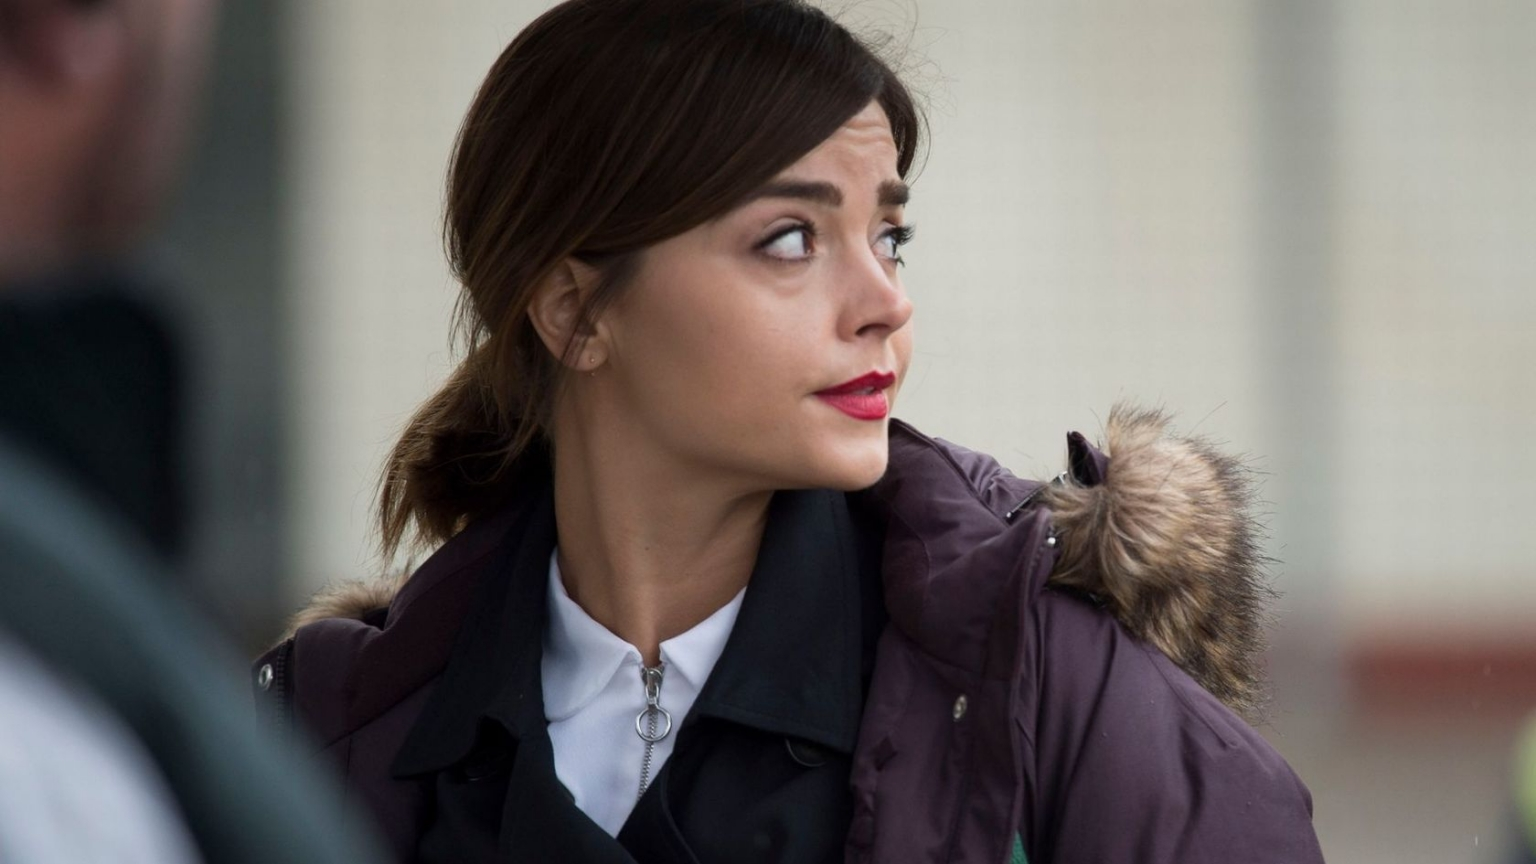 Jenna Coleman from Doctor Who for 1536 x 864 HDTV resolution